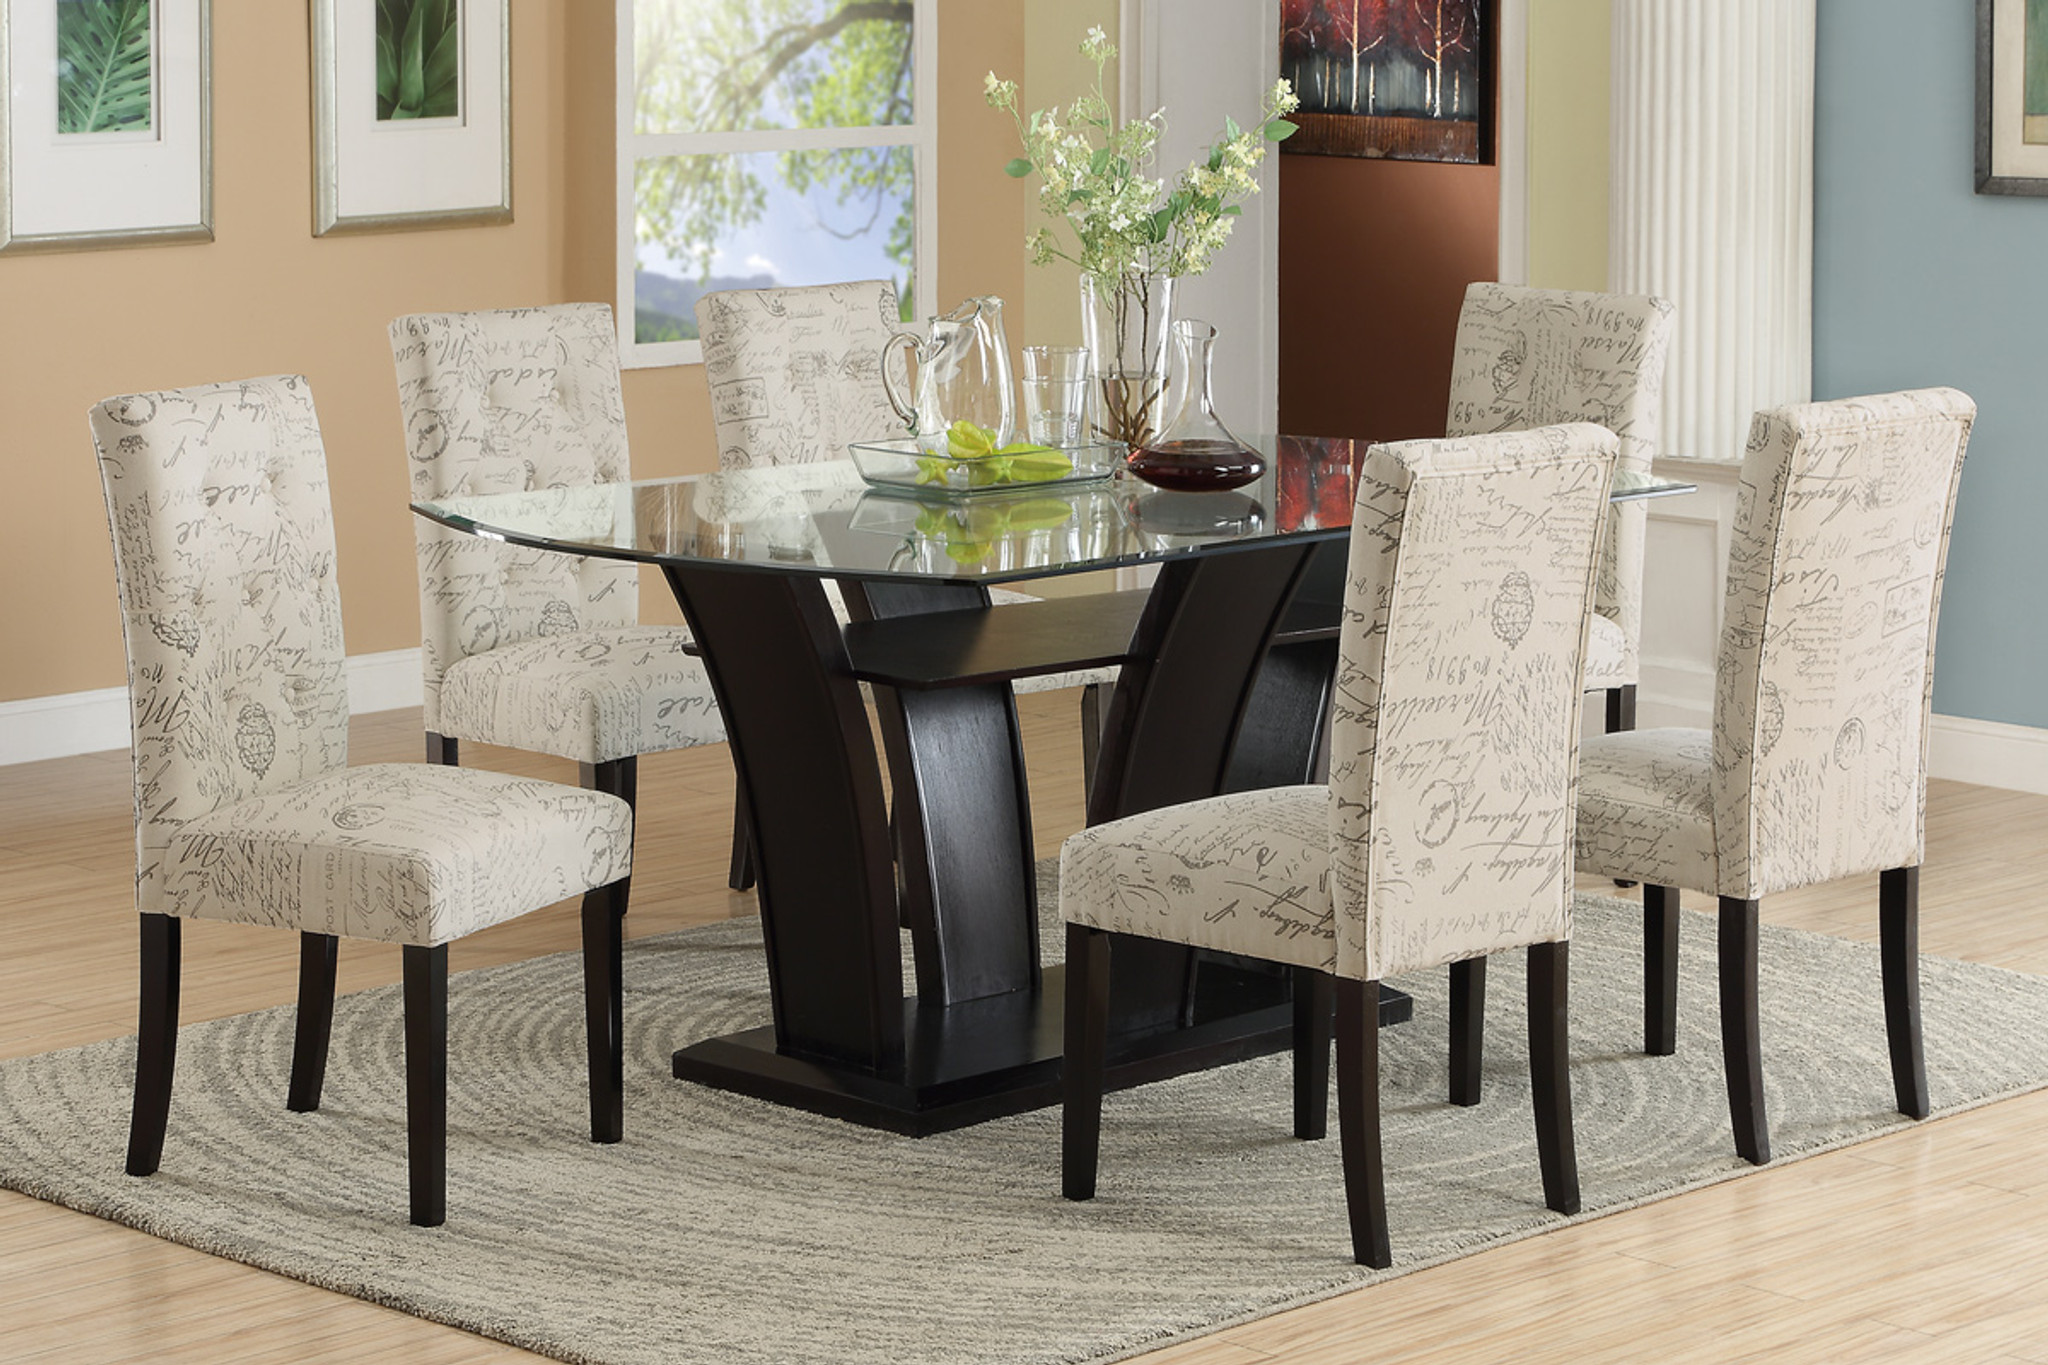 5PC FUTURISTIC STYLE FORMAL DINING ROOM SET